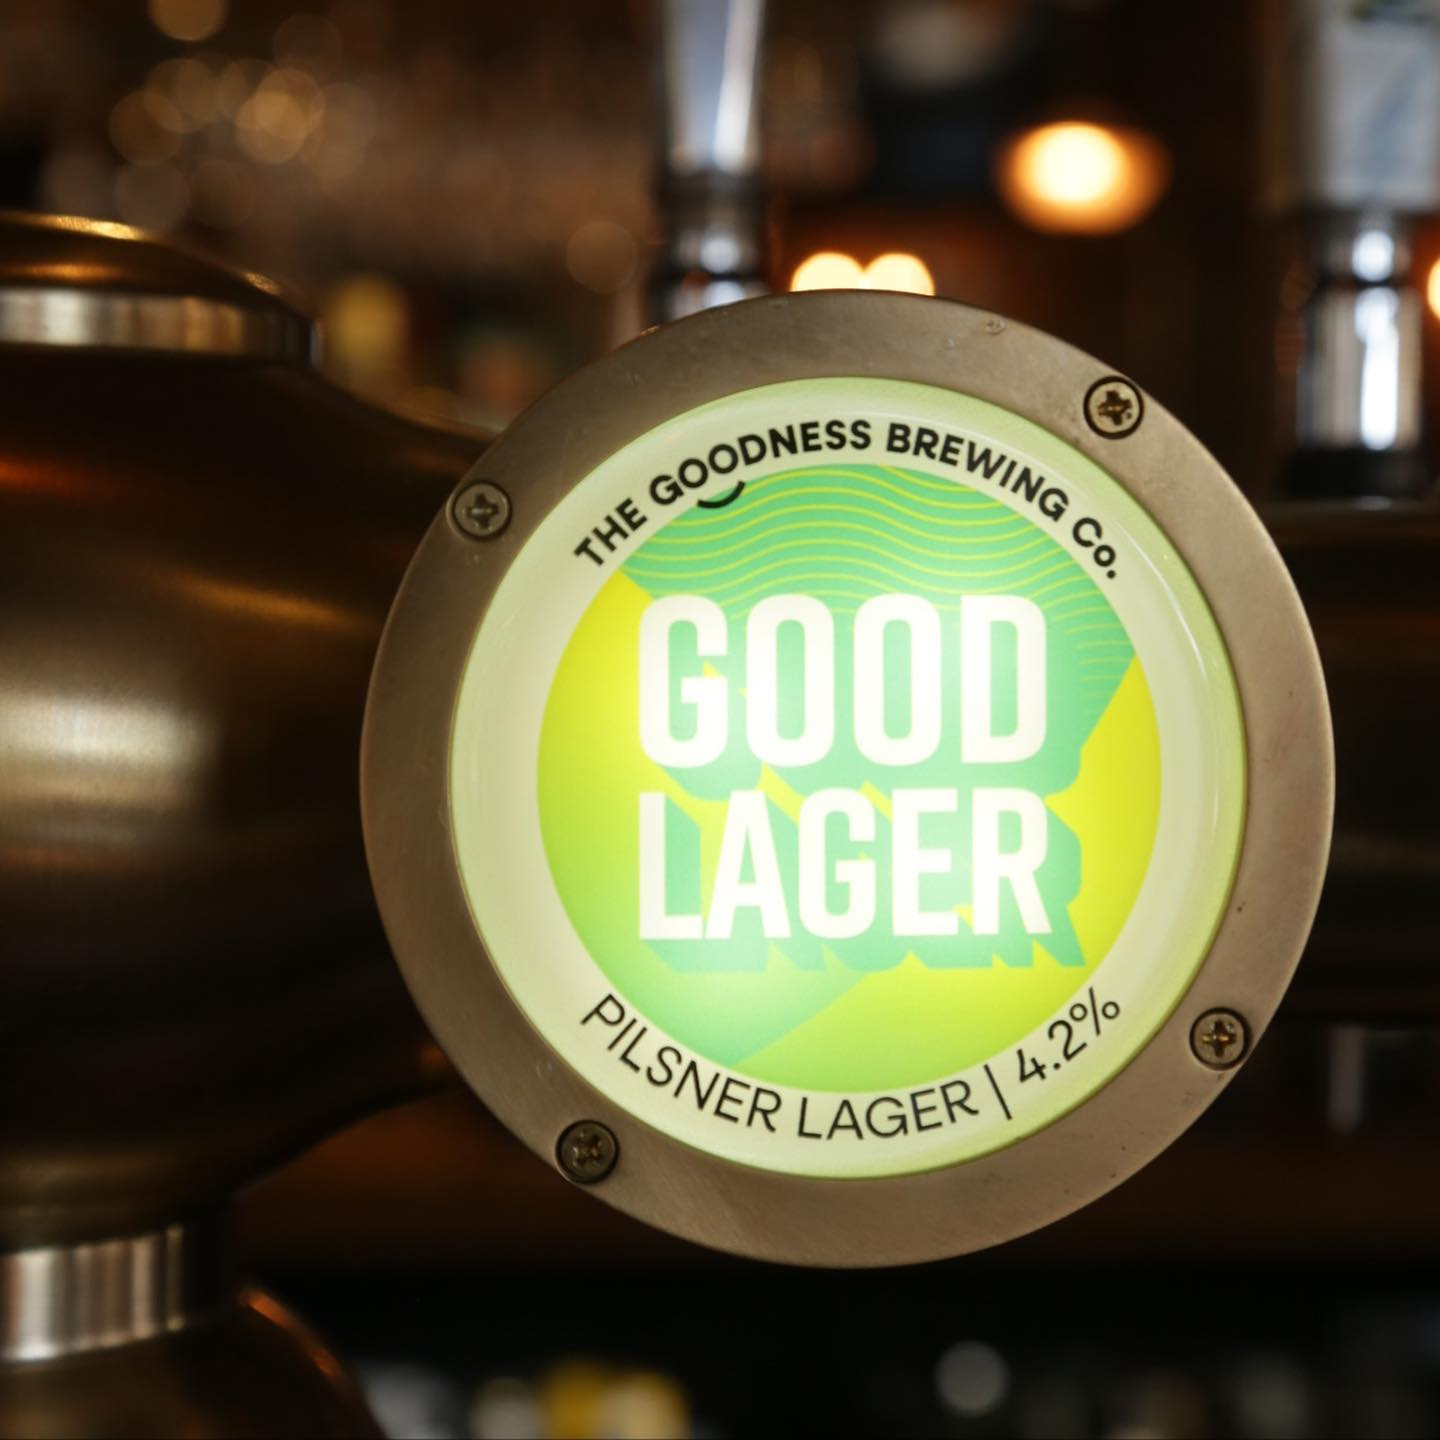 🍺 New on Draught!! 🍺  Now serving 'Good Lager' from @thegoodnessbrew a crisp and easy drinking Pilsner that lives up to its name!   AND   Atlantic A.P.A from @brixtonbrewery, A bold and refreshing Pale Ale, packed full of hops and bursting with citrus flavours! 🍺   #thealpaca #islington #angel #essexroad  #supportlocal #pub #pints #london #londonpubs #pubsoflondon #beer #goodnessbeer #craftbeer #craftbeerlover #ipa #lager #pilsner